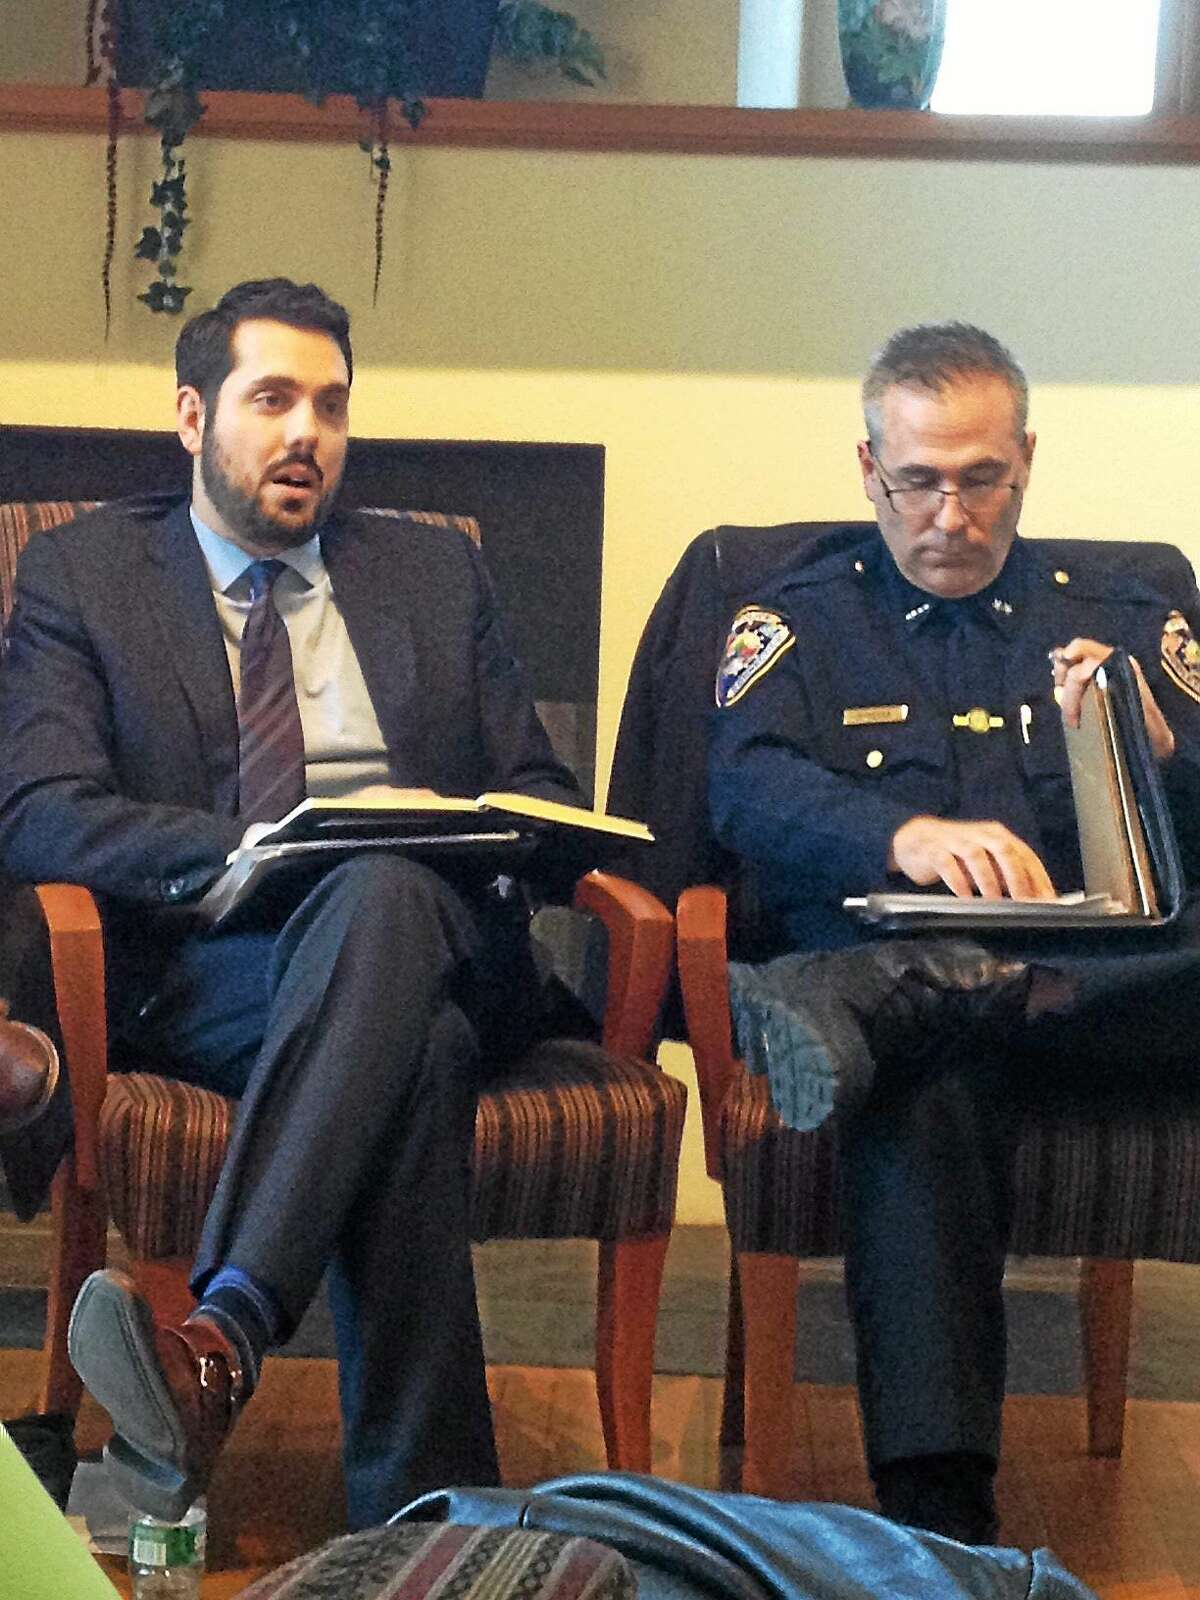 Justin Carbonella, Middletown Youth Services Bureau coordinator, and Middletown Police Chief William McKenna, speak at a panel discussion on several bills advocated by the Connecticut ACLU Wednesday night.